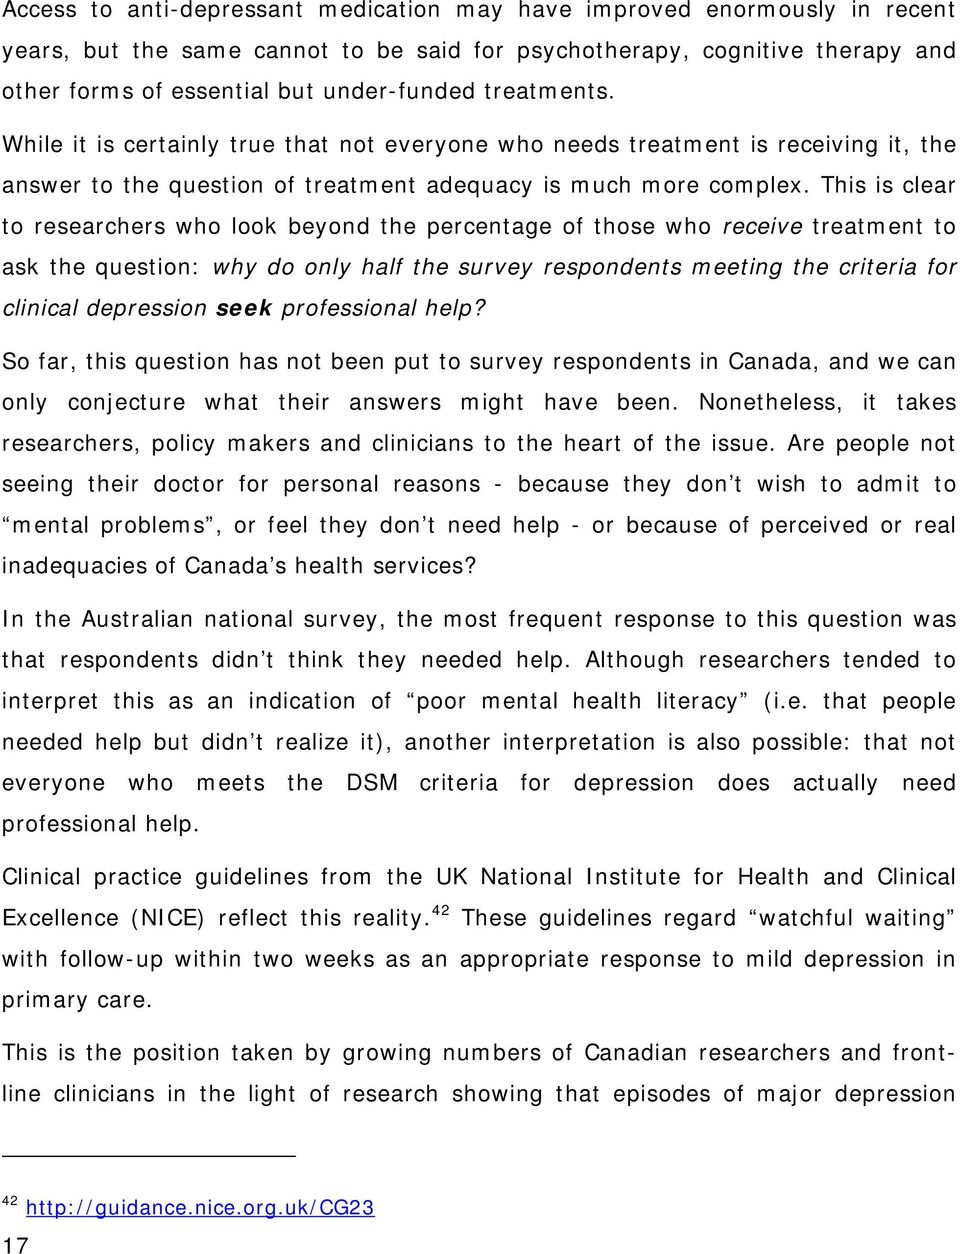 This is clear to researchers who look beyond the percentage of those who receive treatment to ask the question: why do only half the survey respondents meeting the criteria for clinical depression